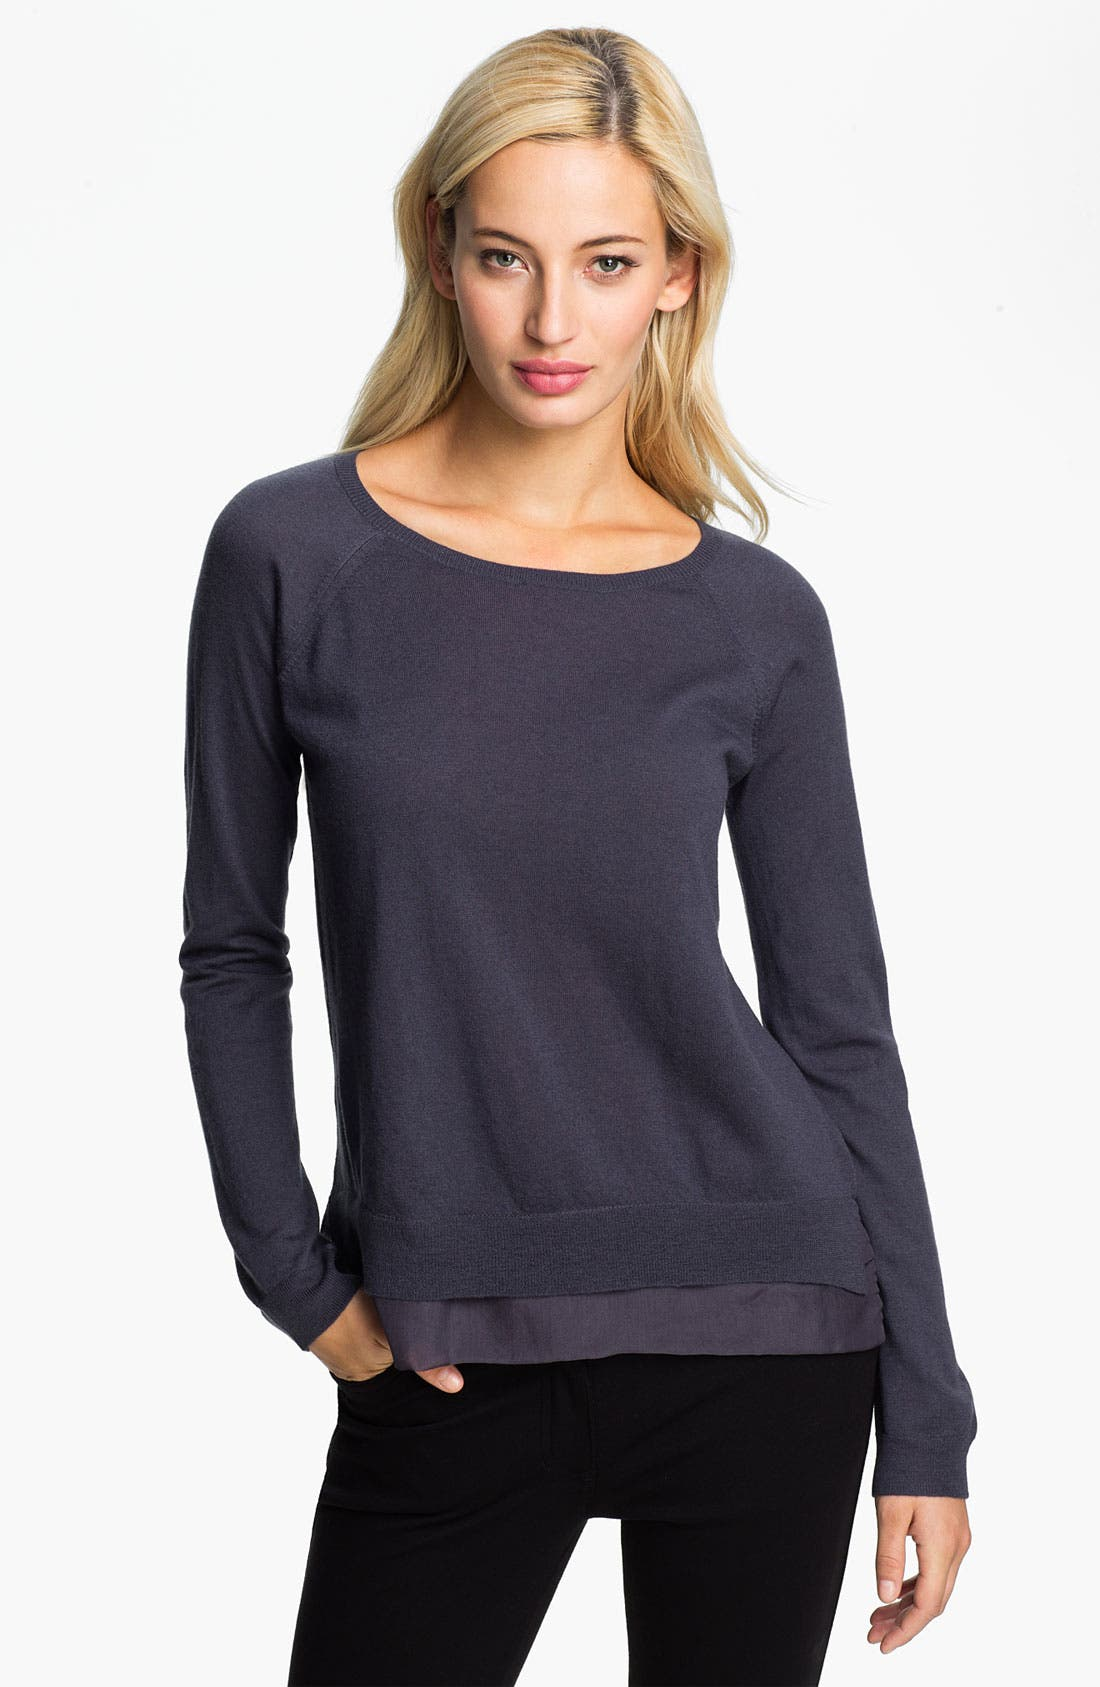 Alternate Image 1 Selected - Christopher Fischer 'Gillian' Cashmere & Chiffon Trim Sweater (Online Exclusive)